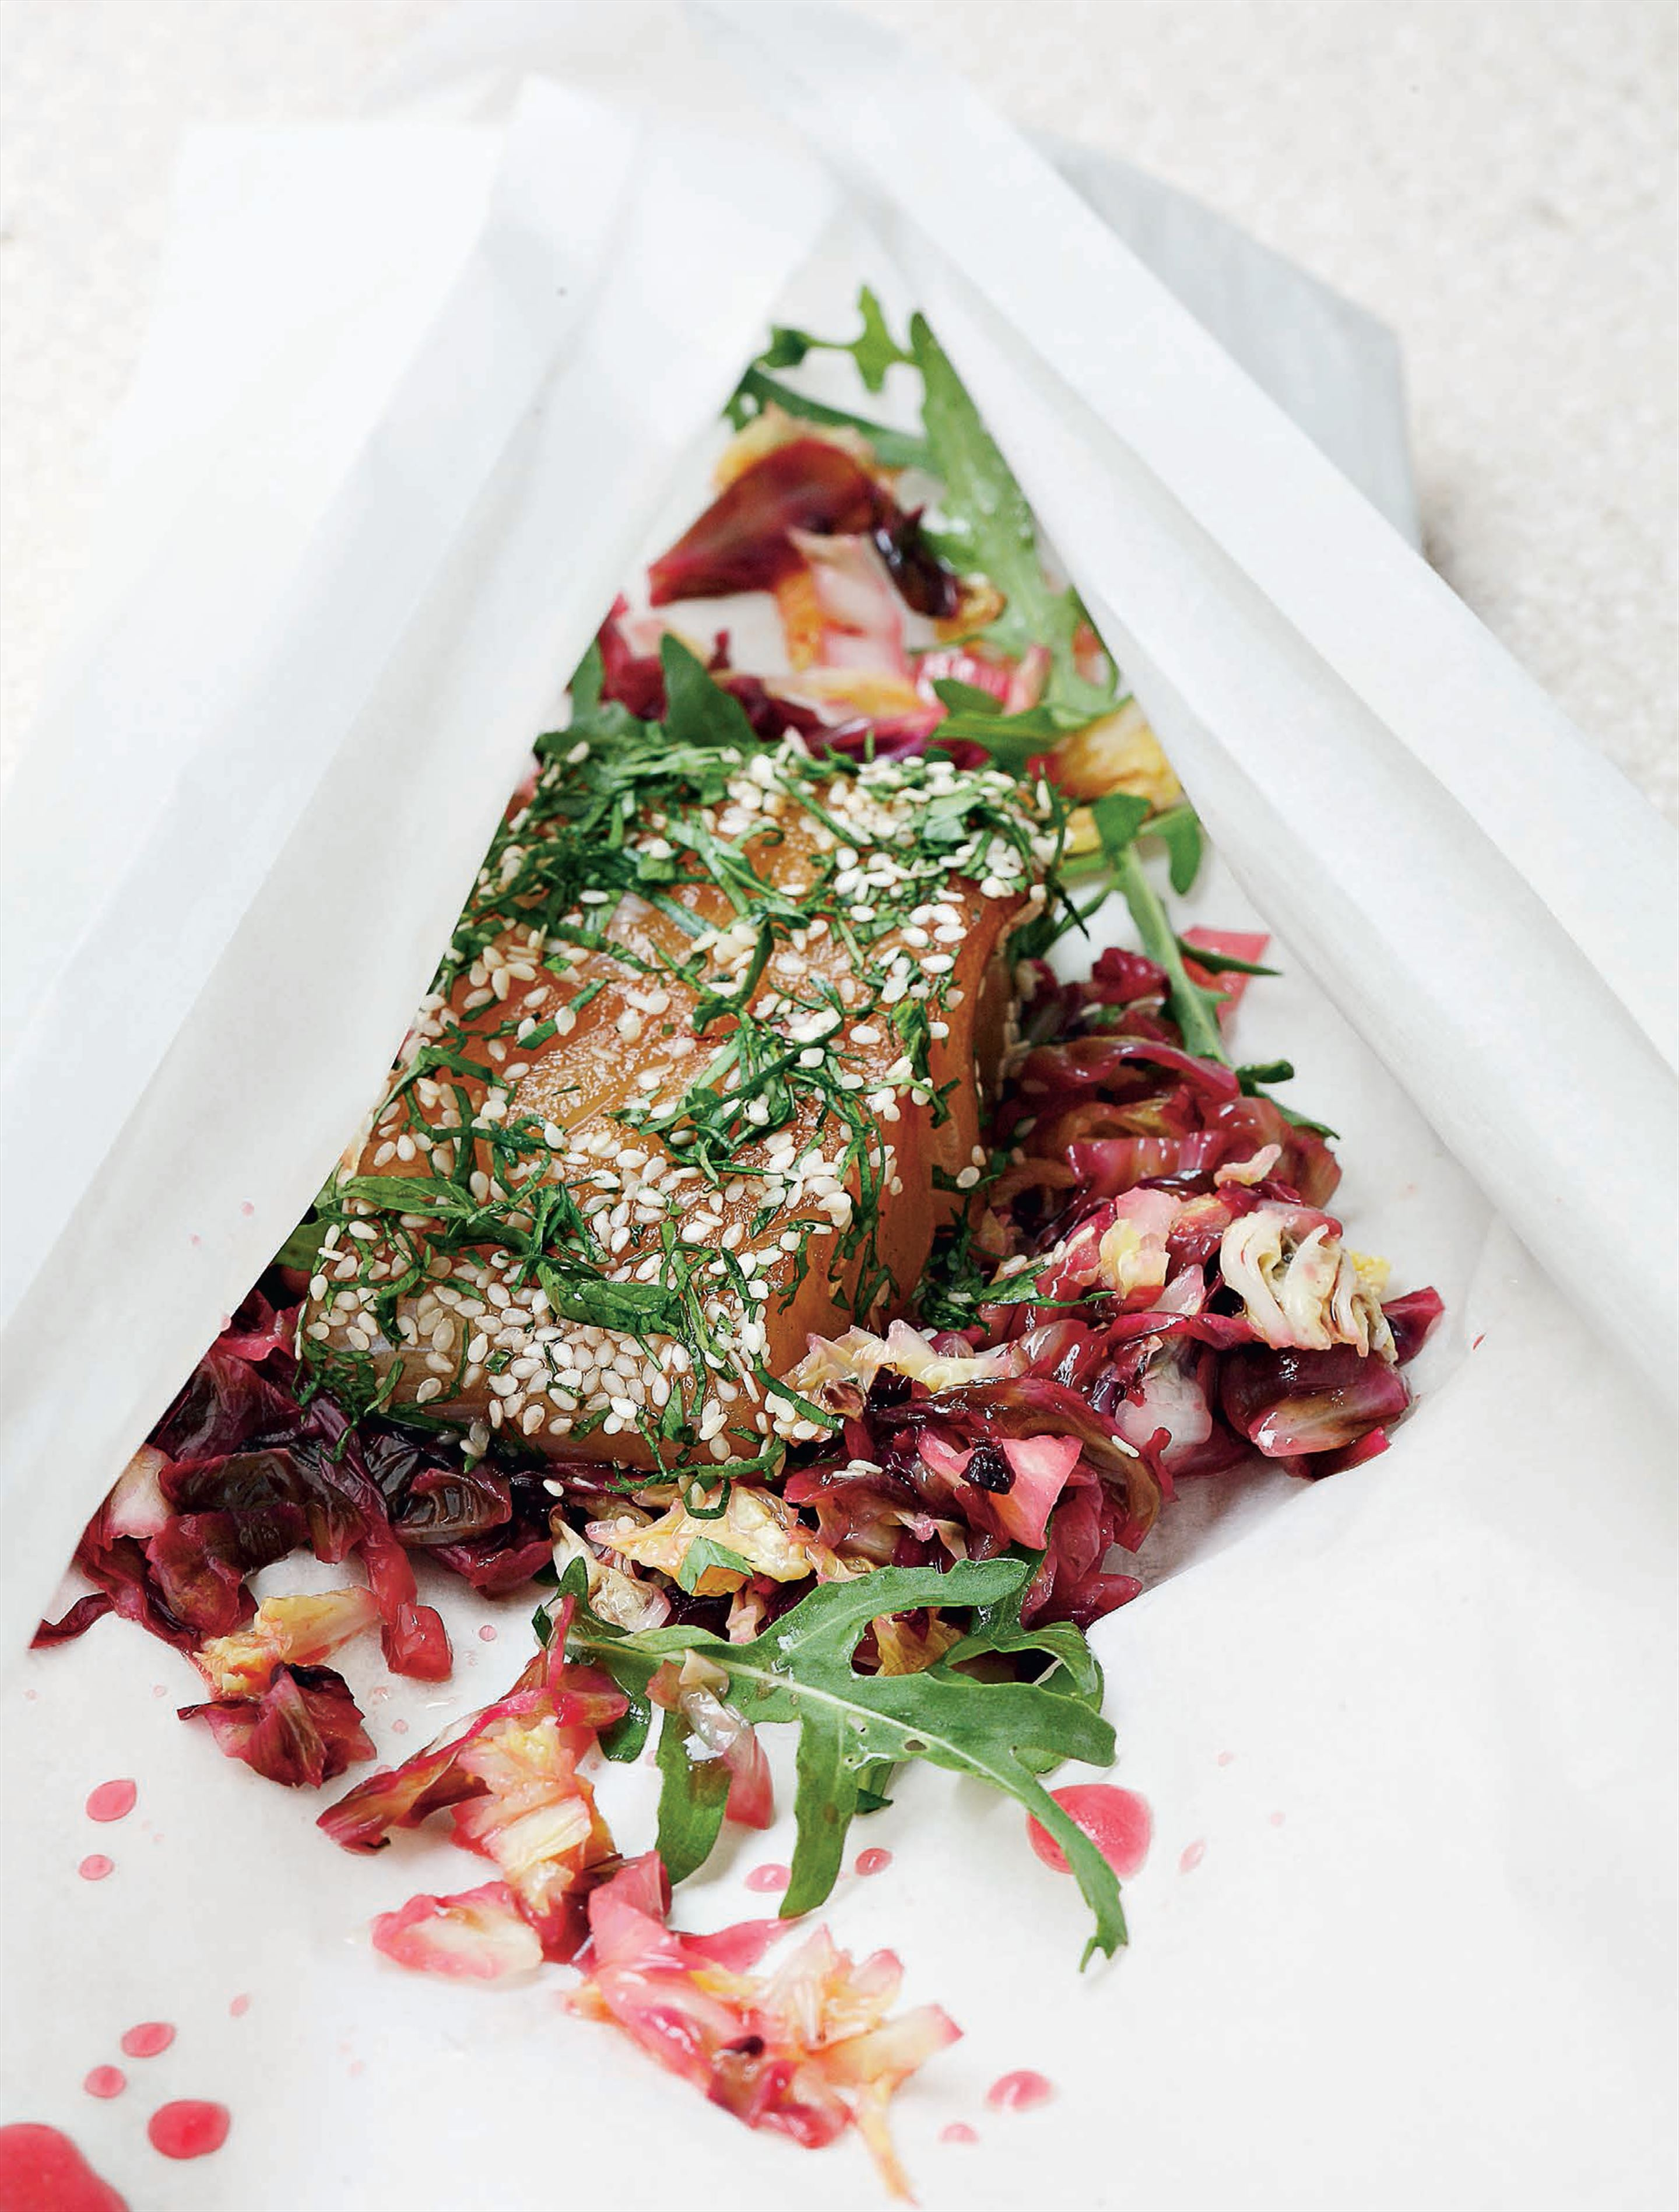 Pollock parcels with Chinese cabbage and radicchio